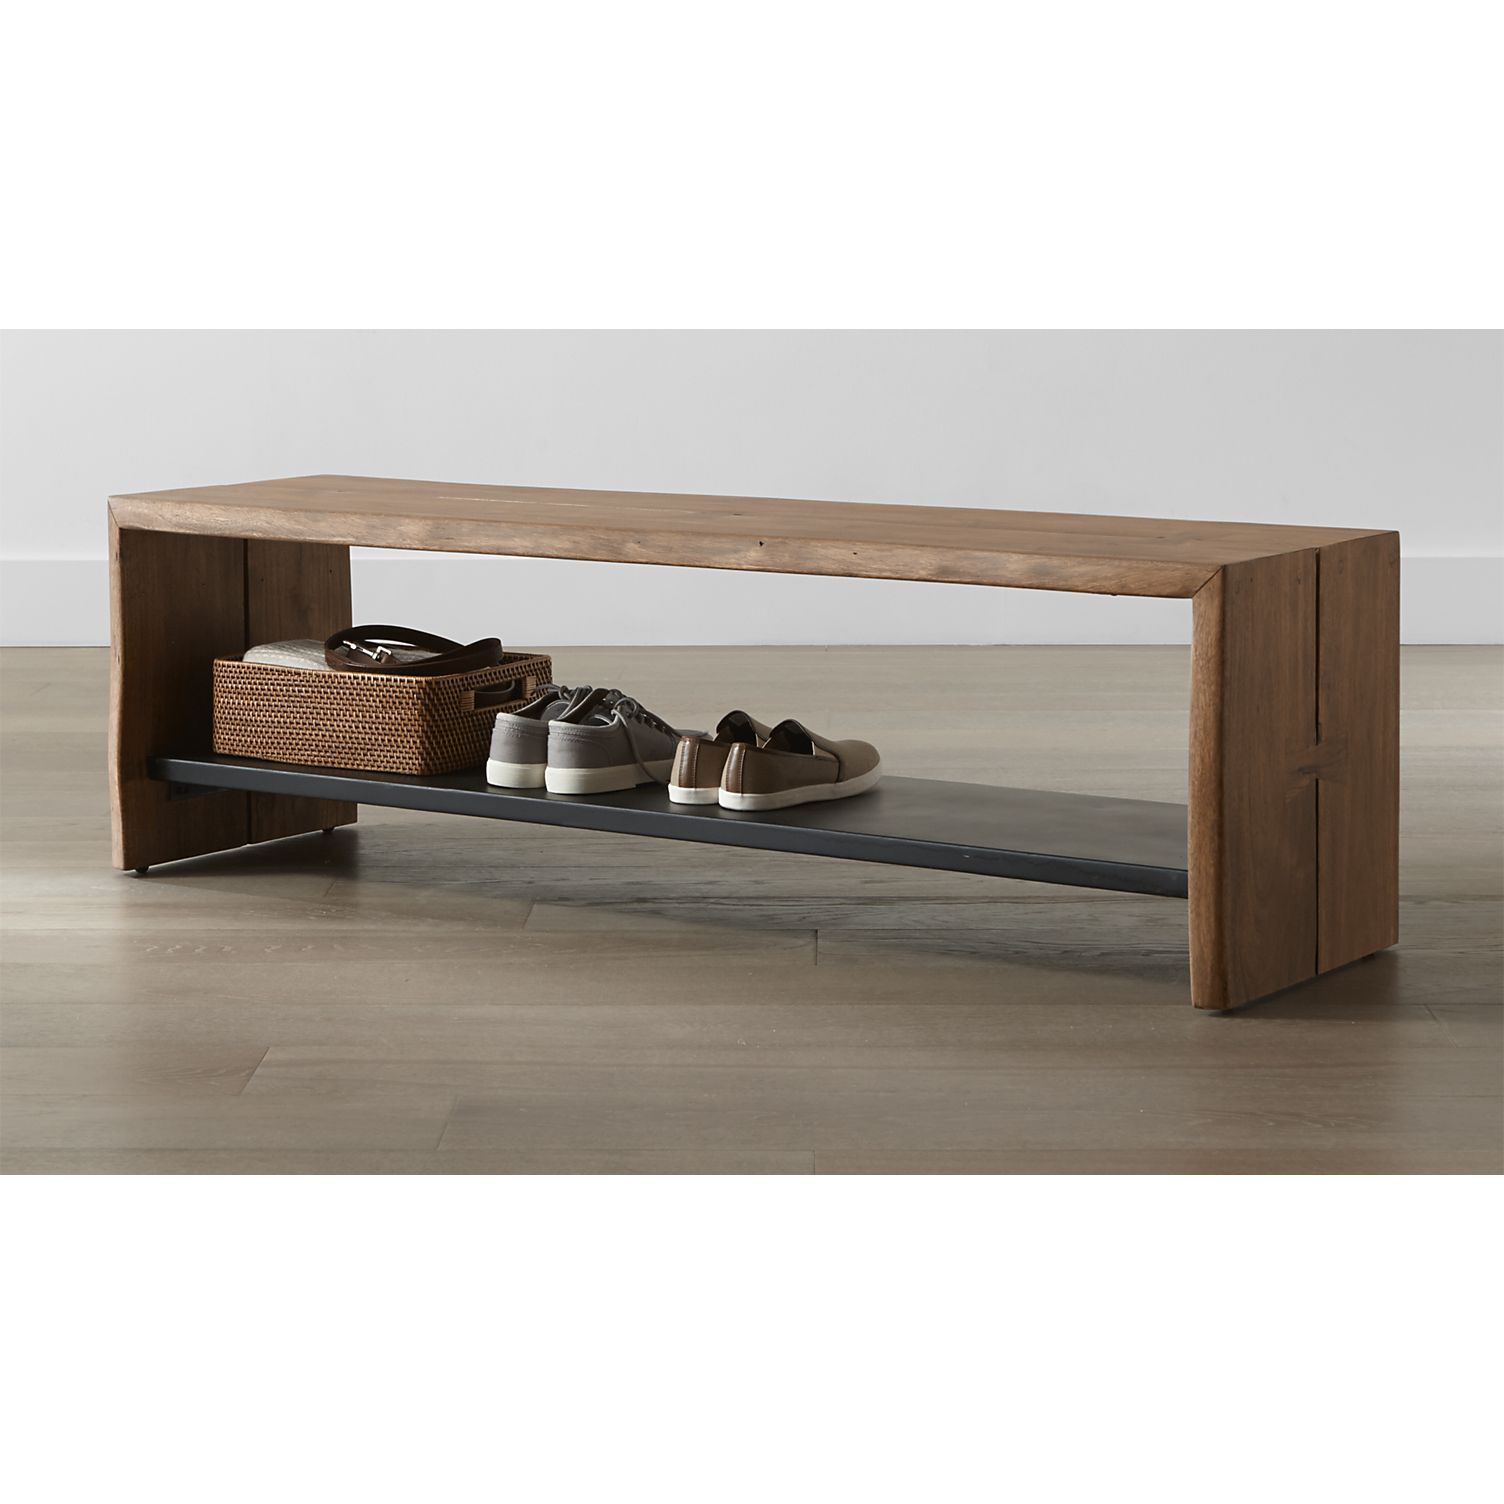 Yukon Natural Entryway Bench with Shelf + Reviews | Crate and Barrel